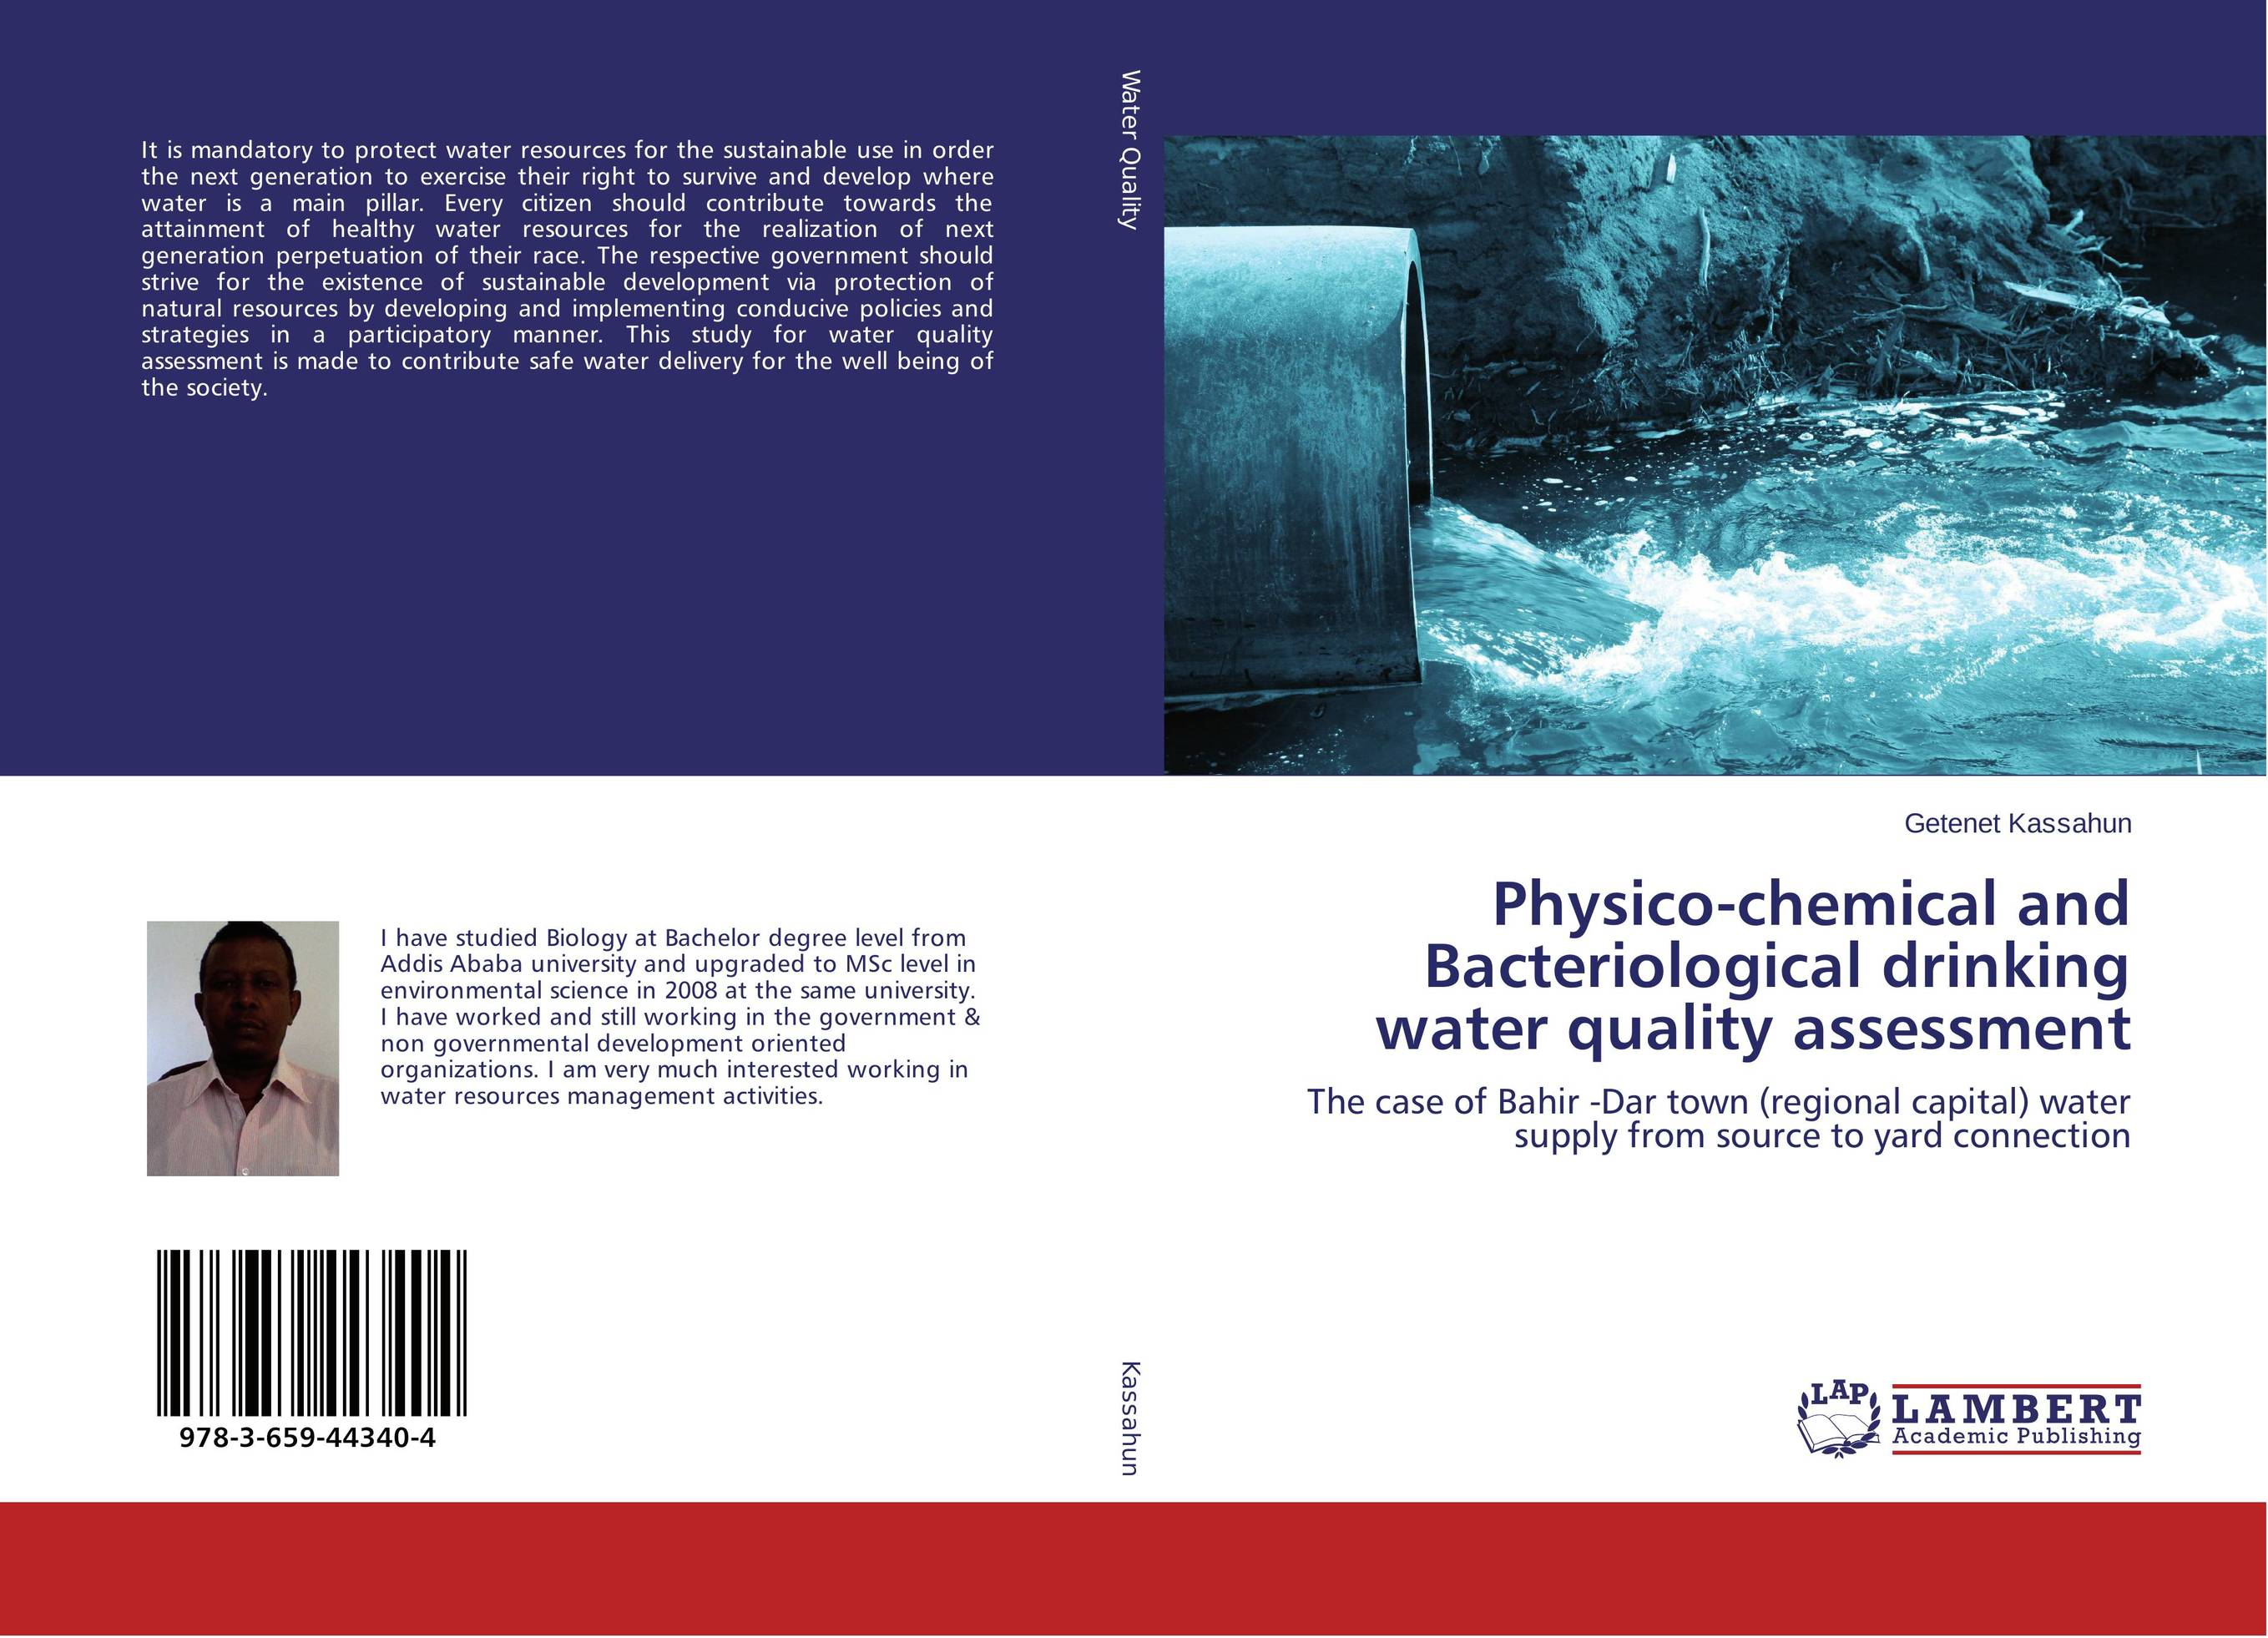 Physico-chemical and Bacteriological drinking water quality assessment купить